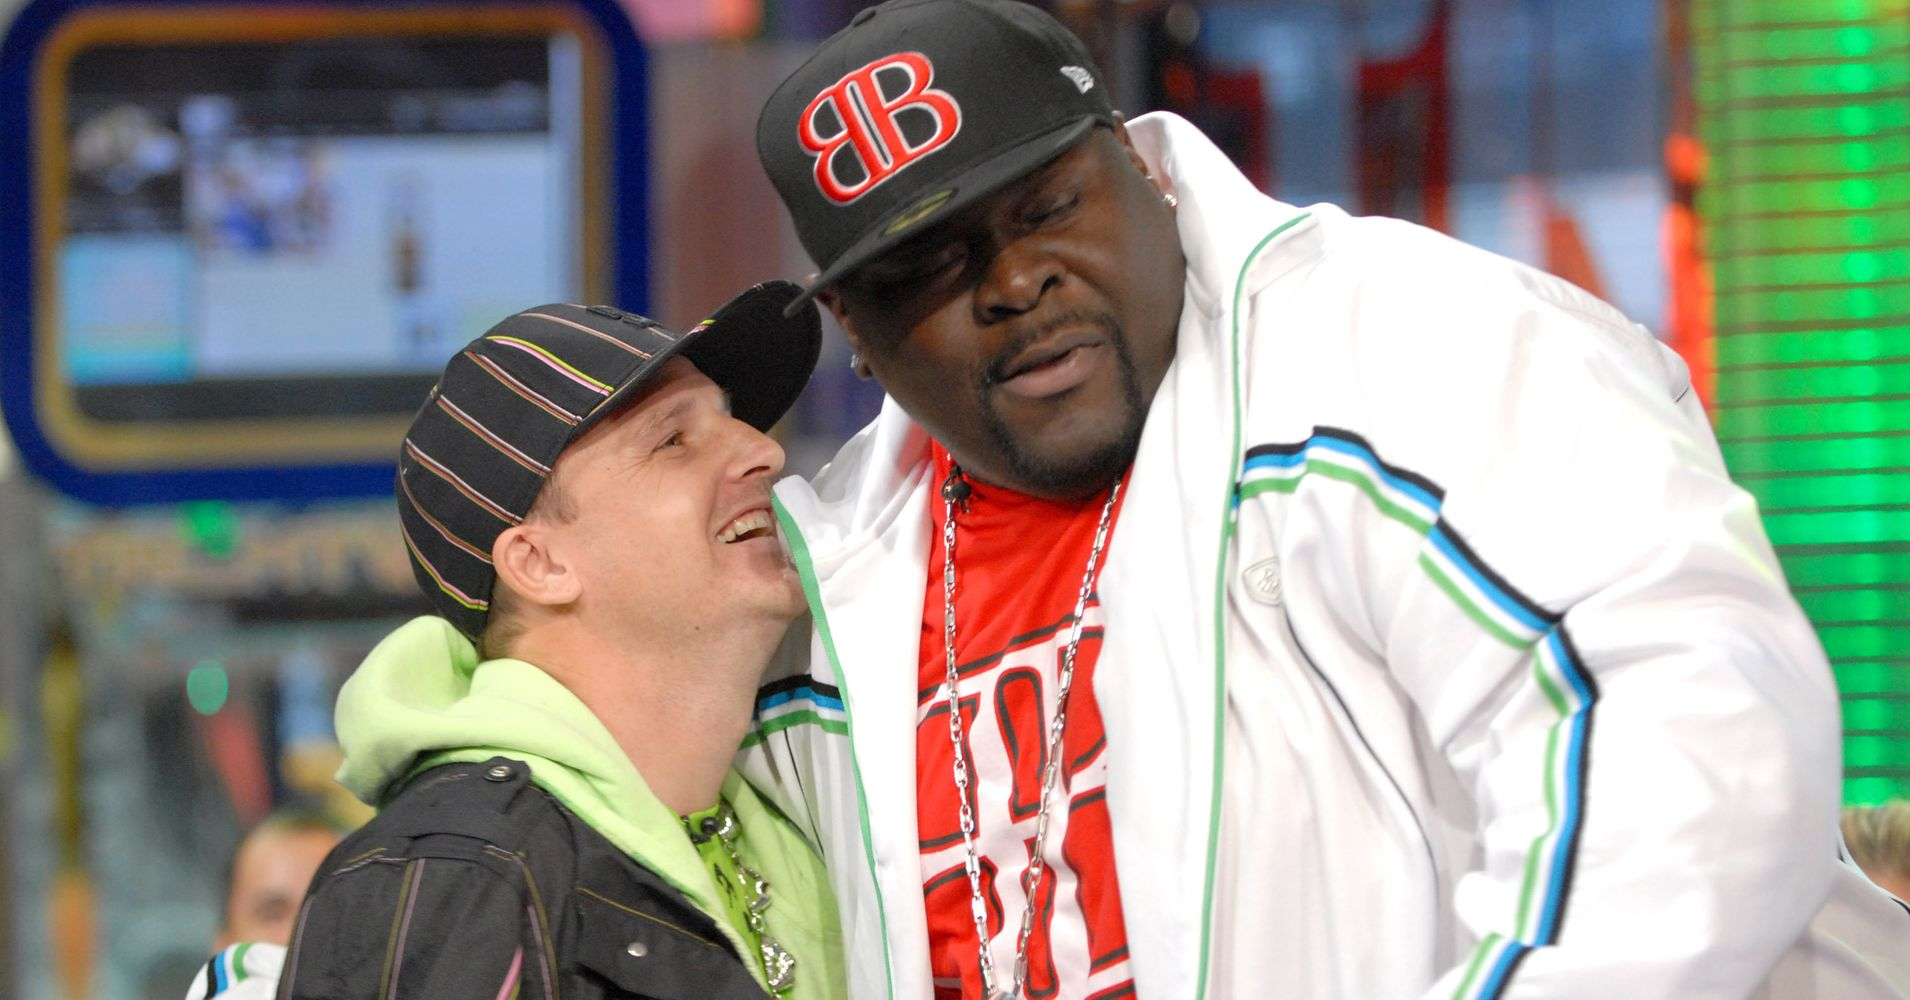 Rob Dyrdek Mourns The Death Of Christopher \'Big Black\' Boykin | HuffPost